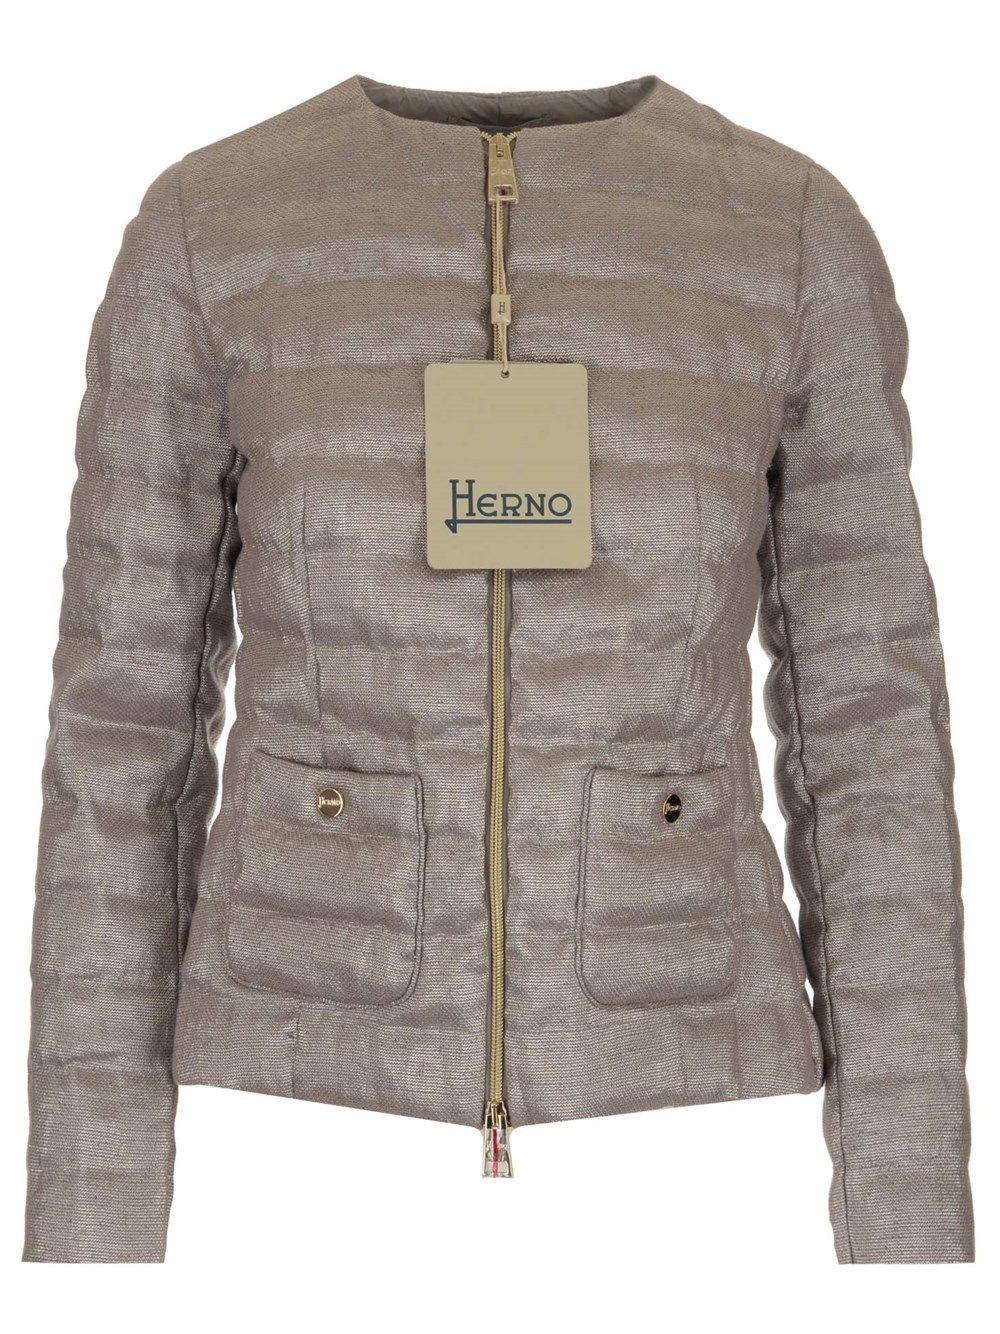 Herno HERNO WOMEN'S PI1274D171049409 SILVER OTHER MATERIALS DOWN JACKET